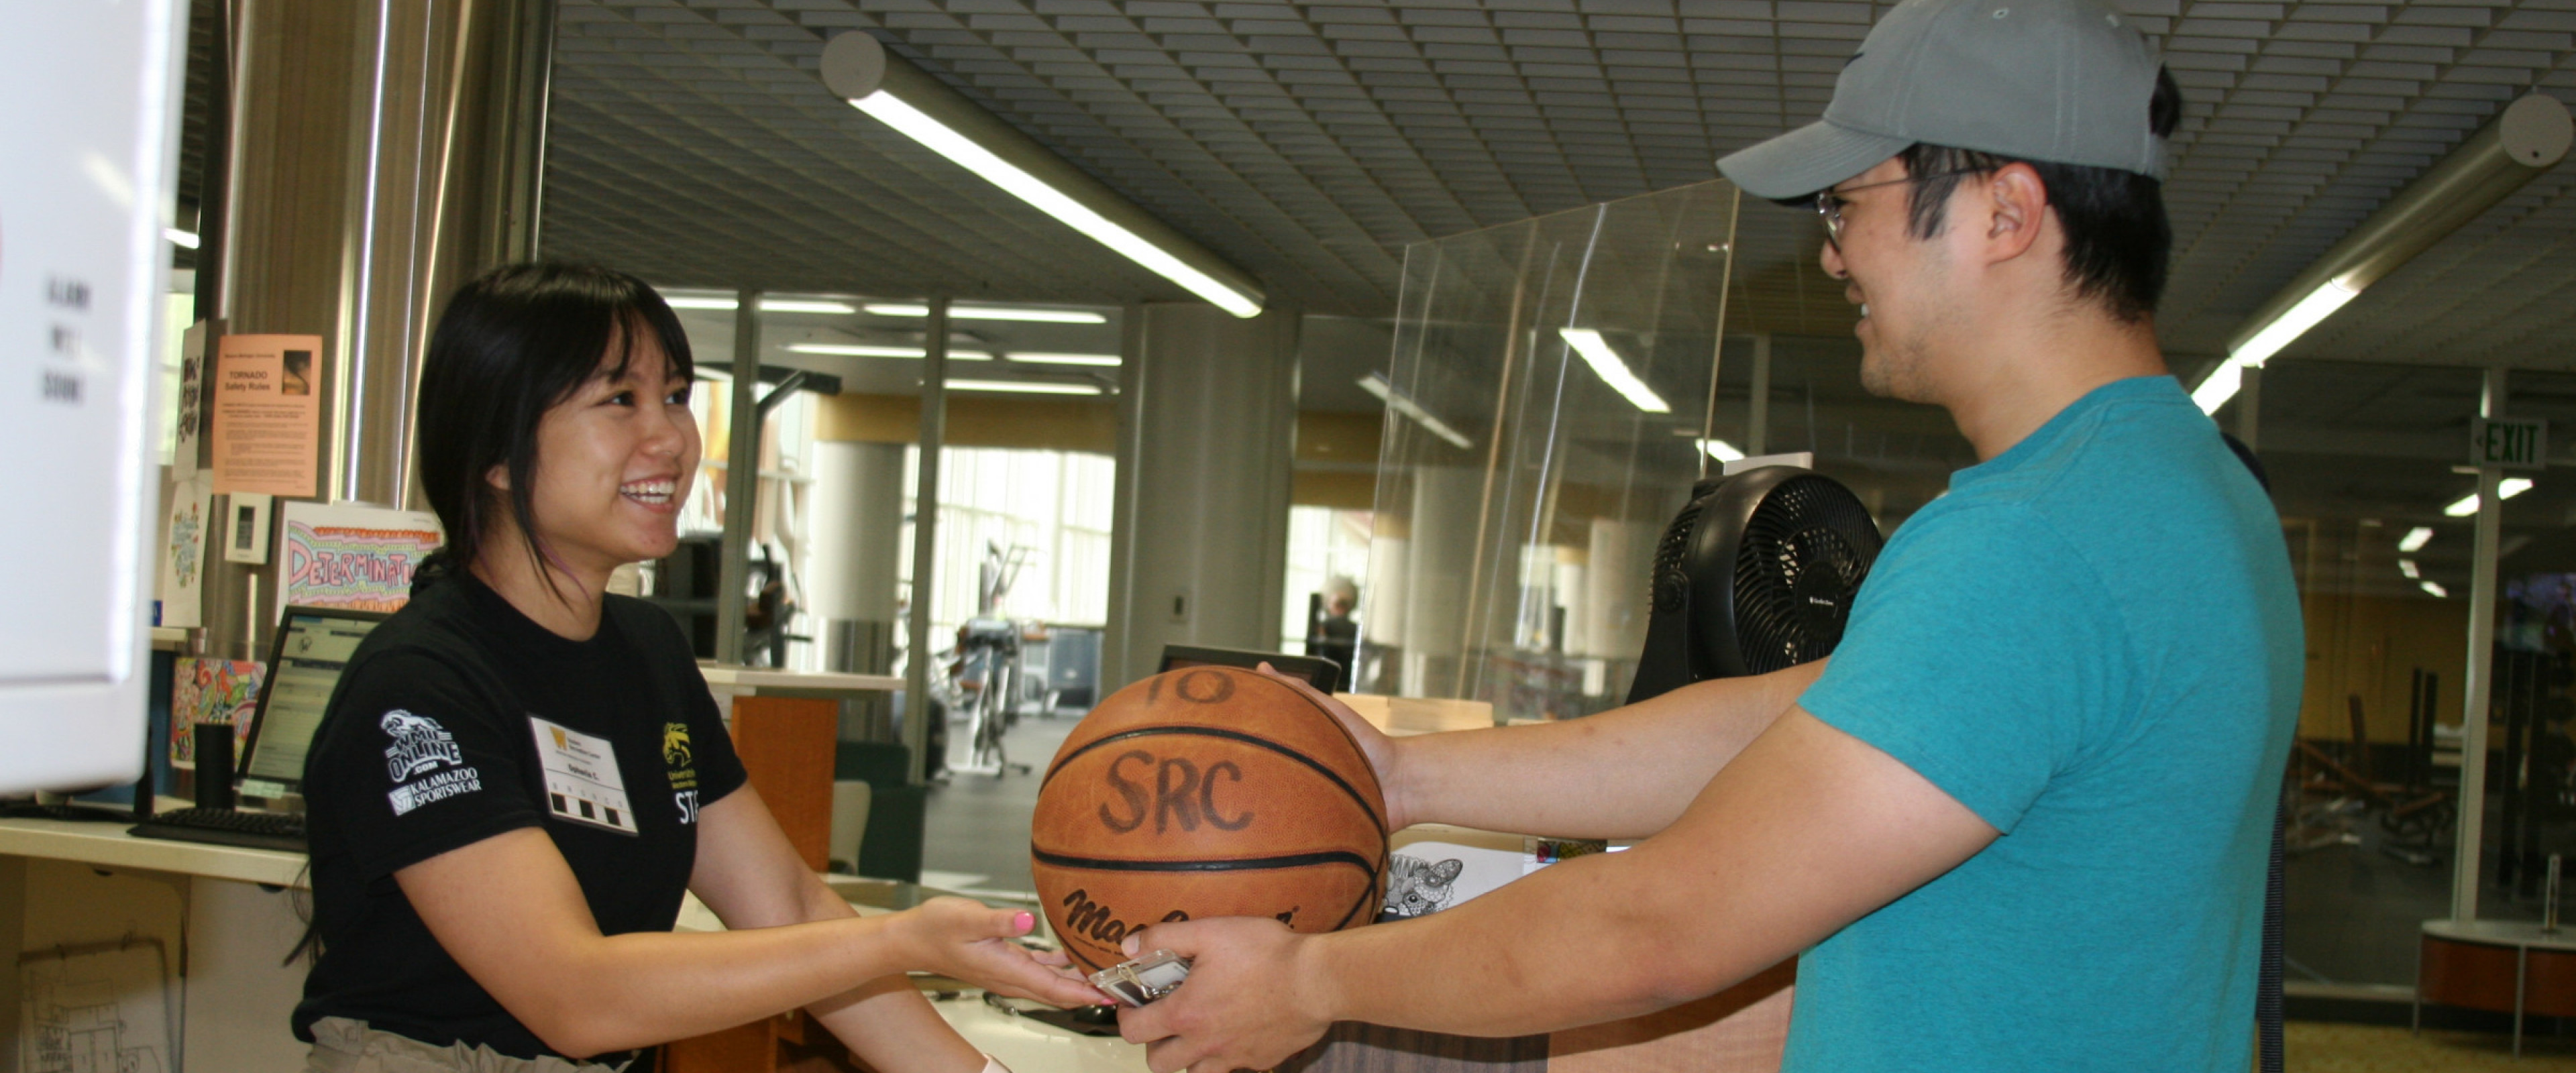 SRC employee working at the service desk checking a basketball out to a patron.